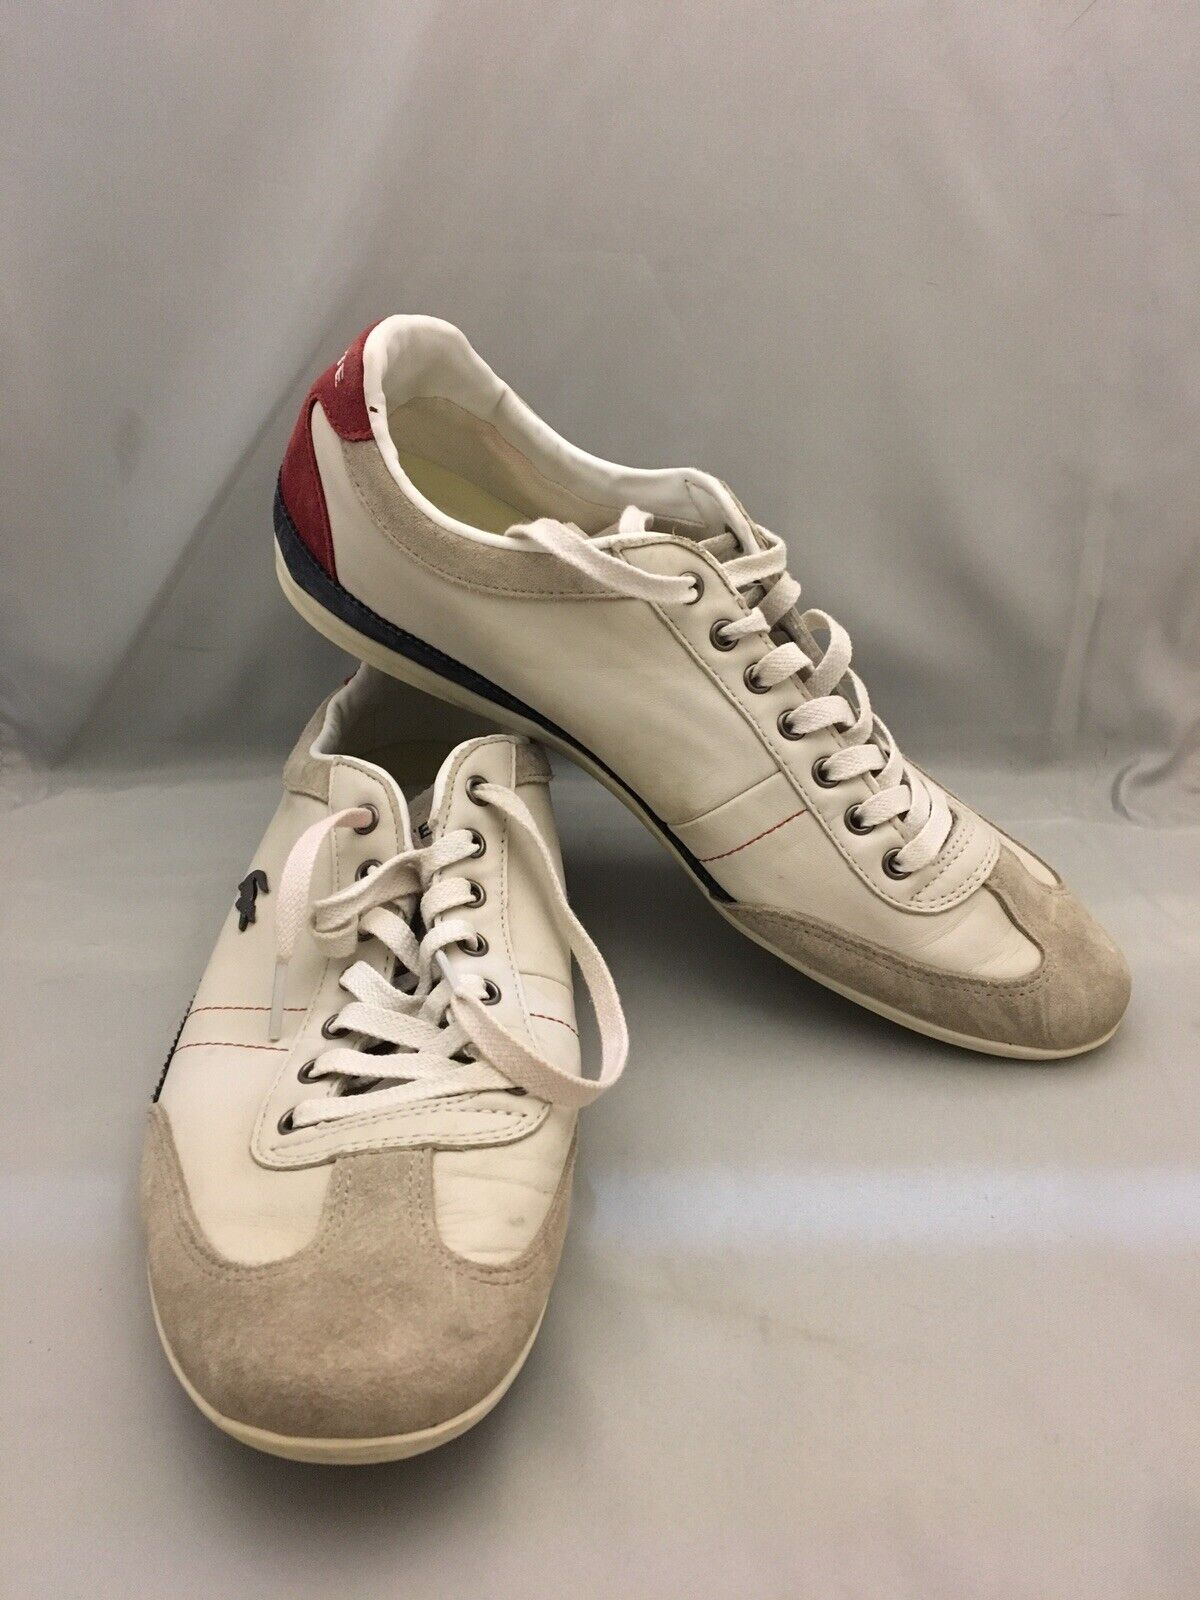 LACOSTE MEN'S LEATHER SNEAKERS size 11 Tennis shoes Very Good Condition NICE